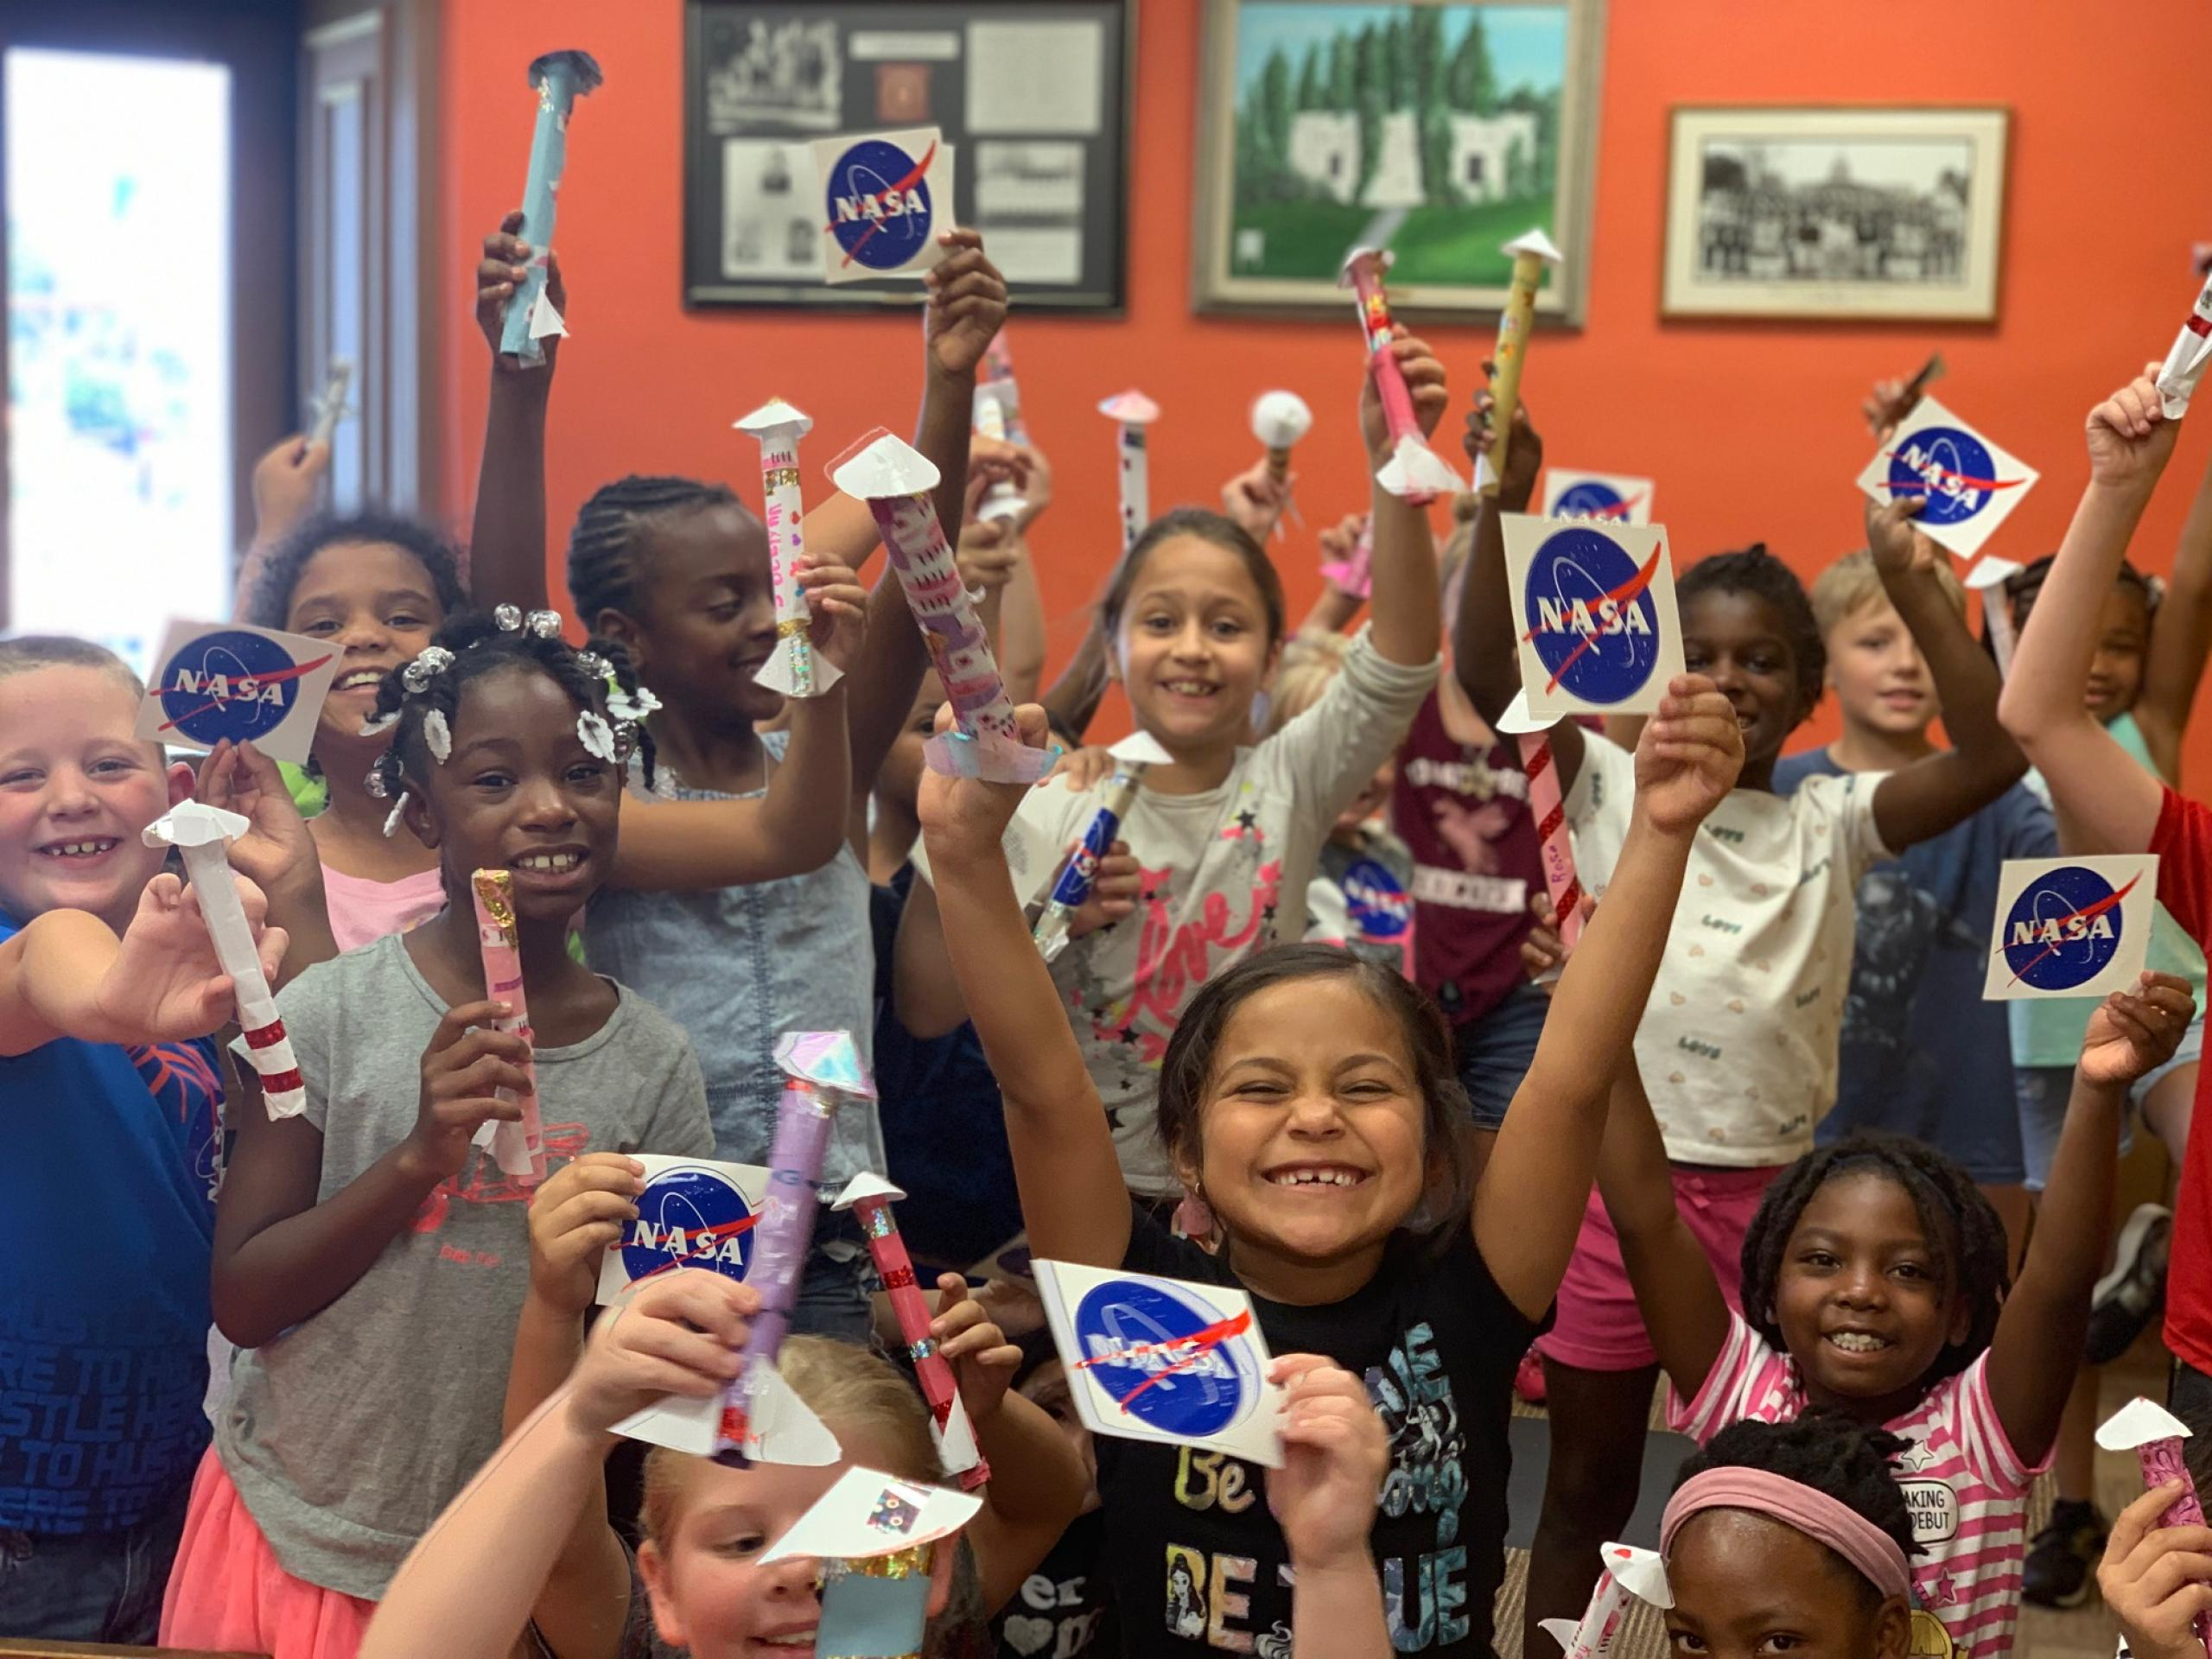 Children showing off their paper rockets and NASA stickers.